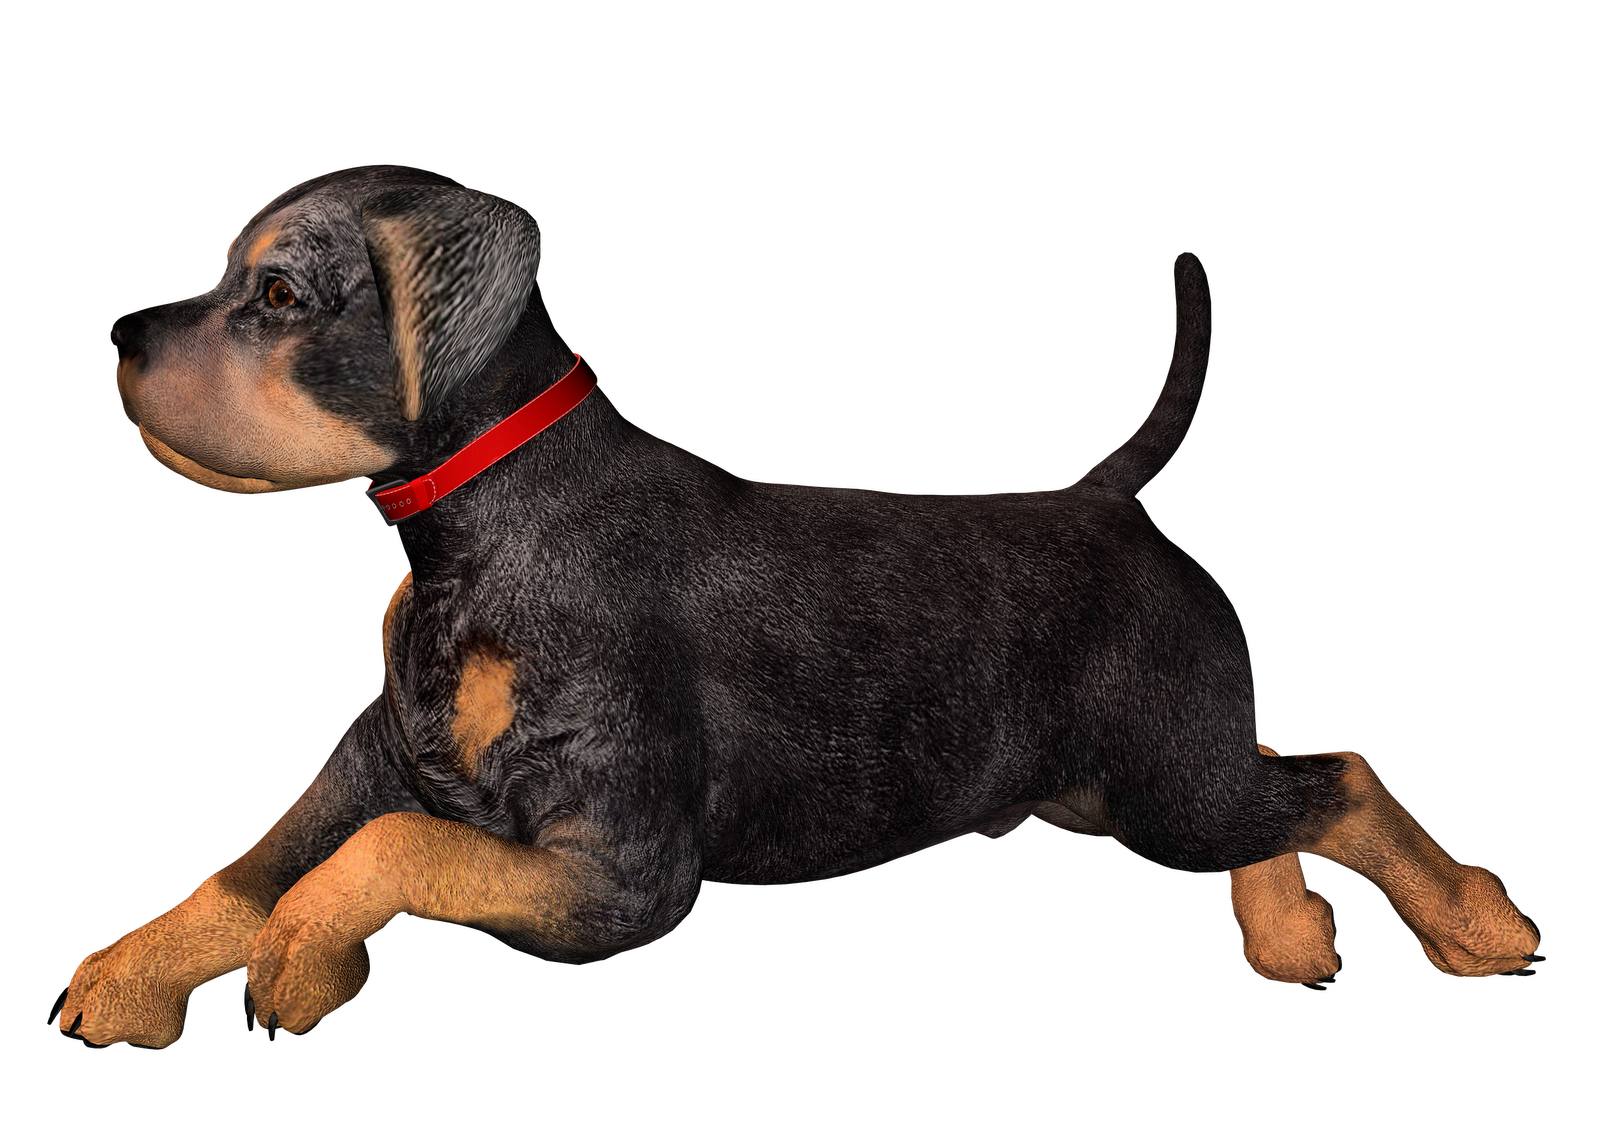 Dog Png Images - ClipArt Best